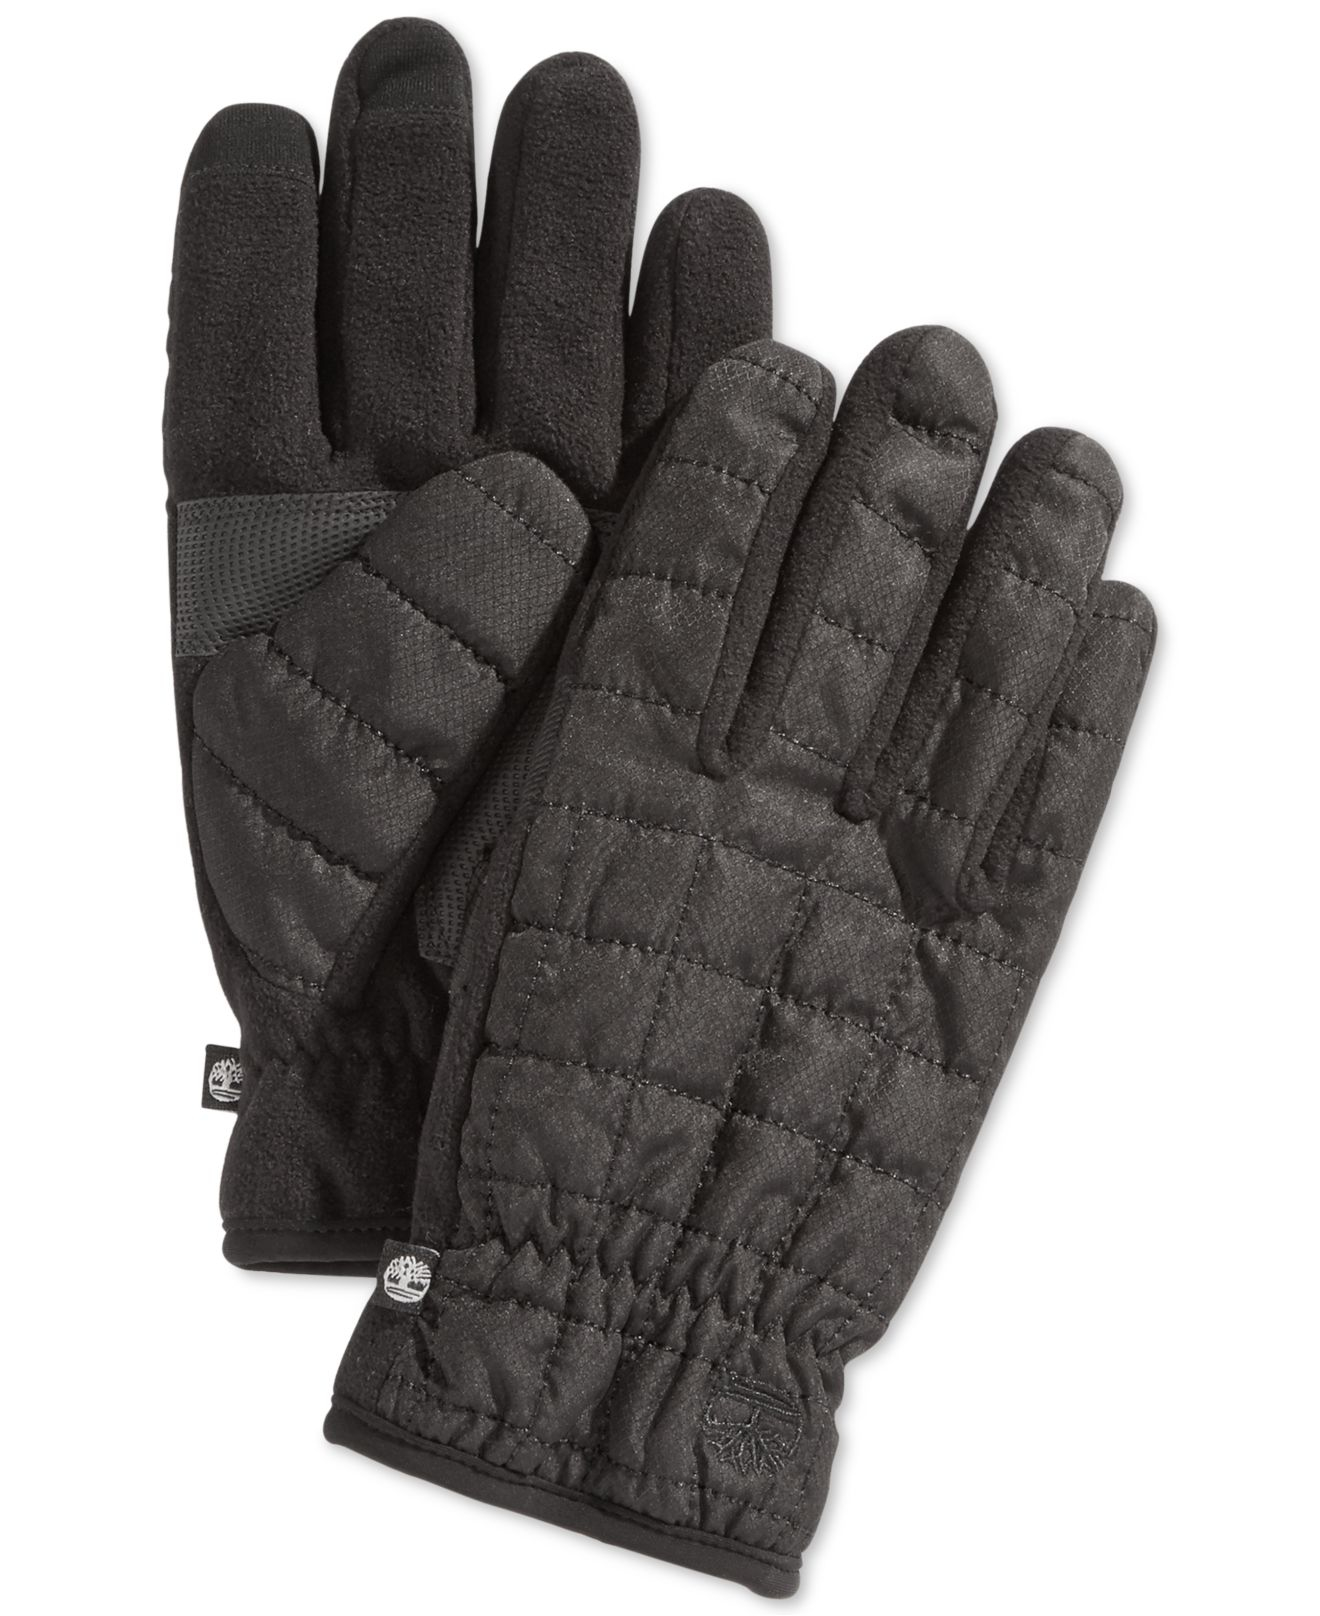 Leather driving gloves macys - Featured